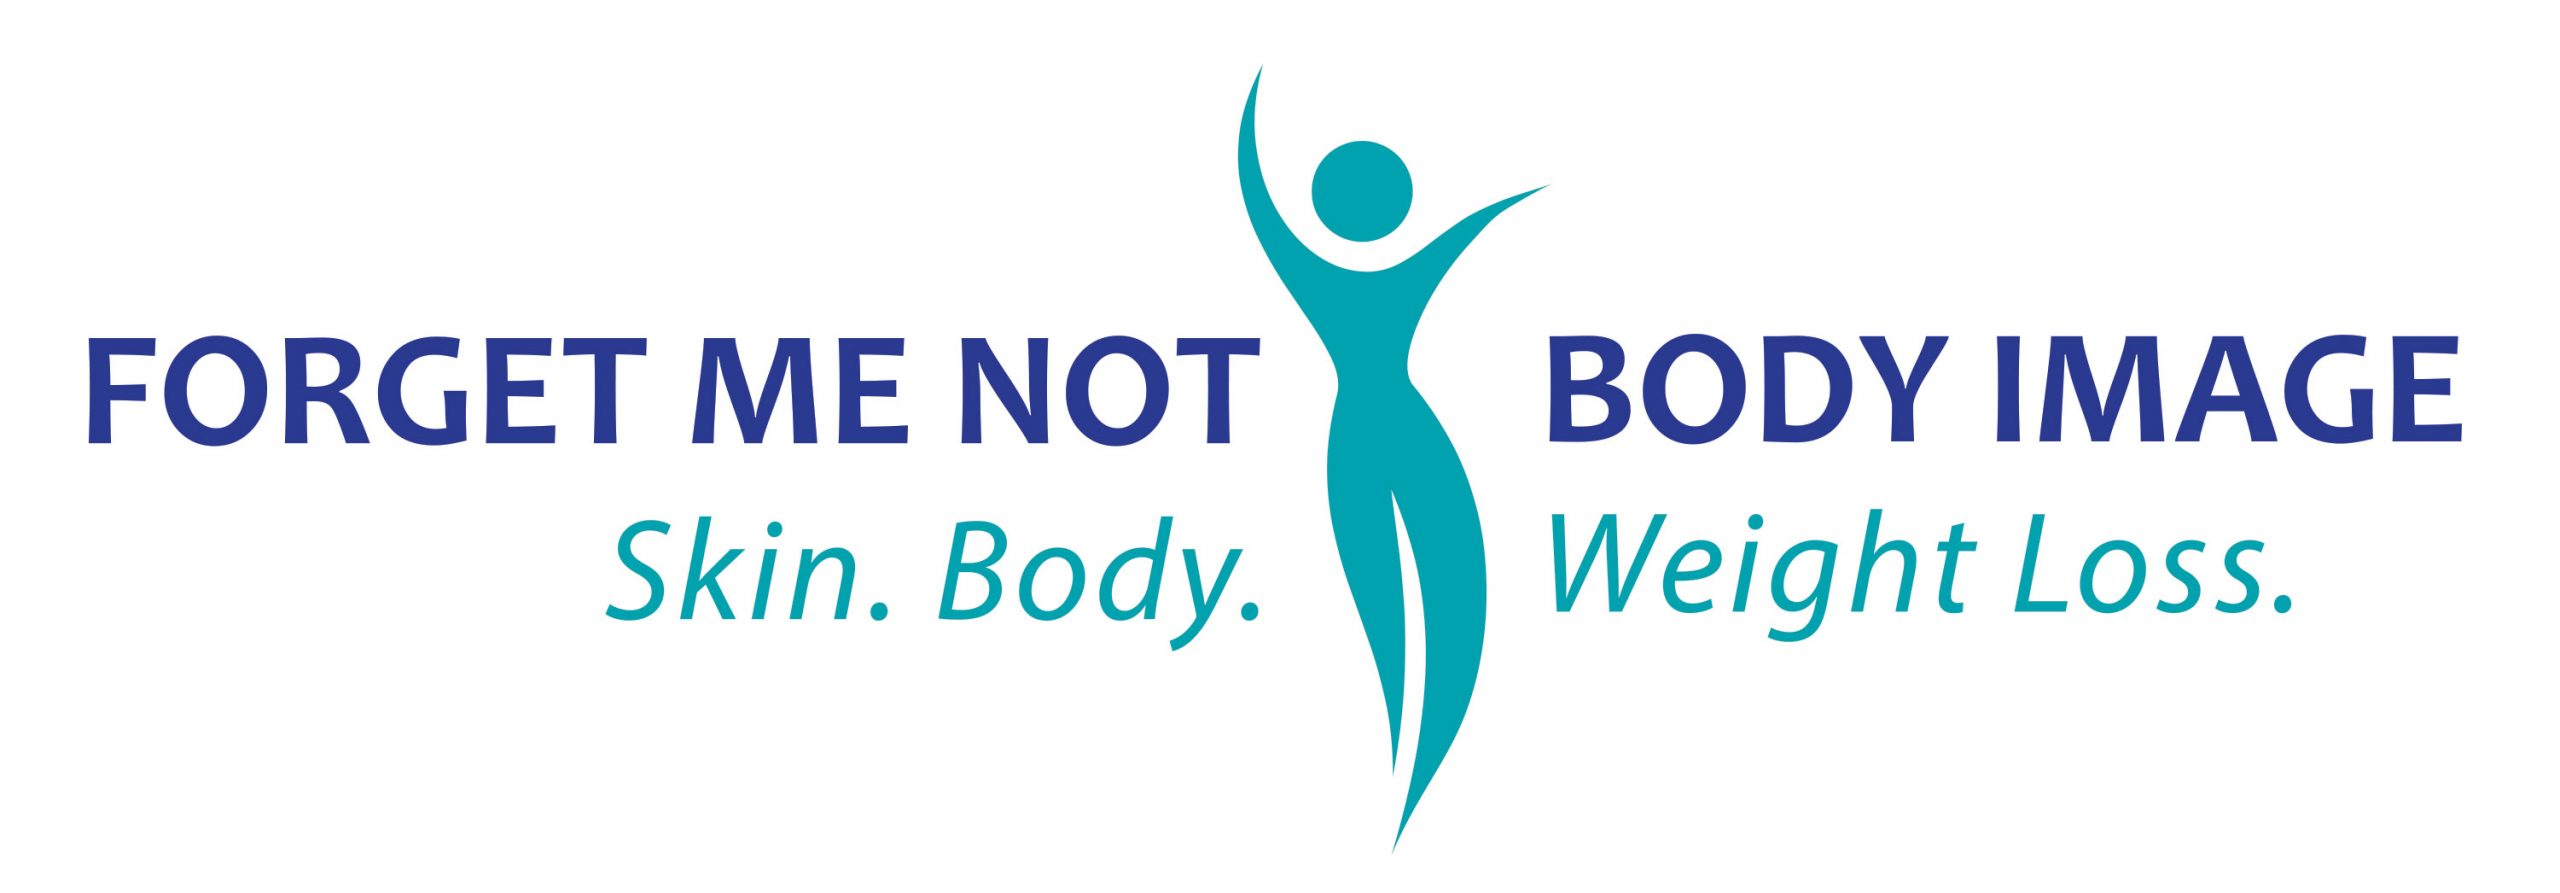 Forget Me Not Body Image